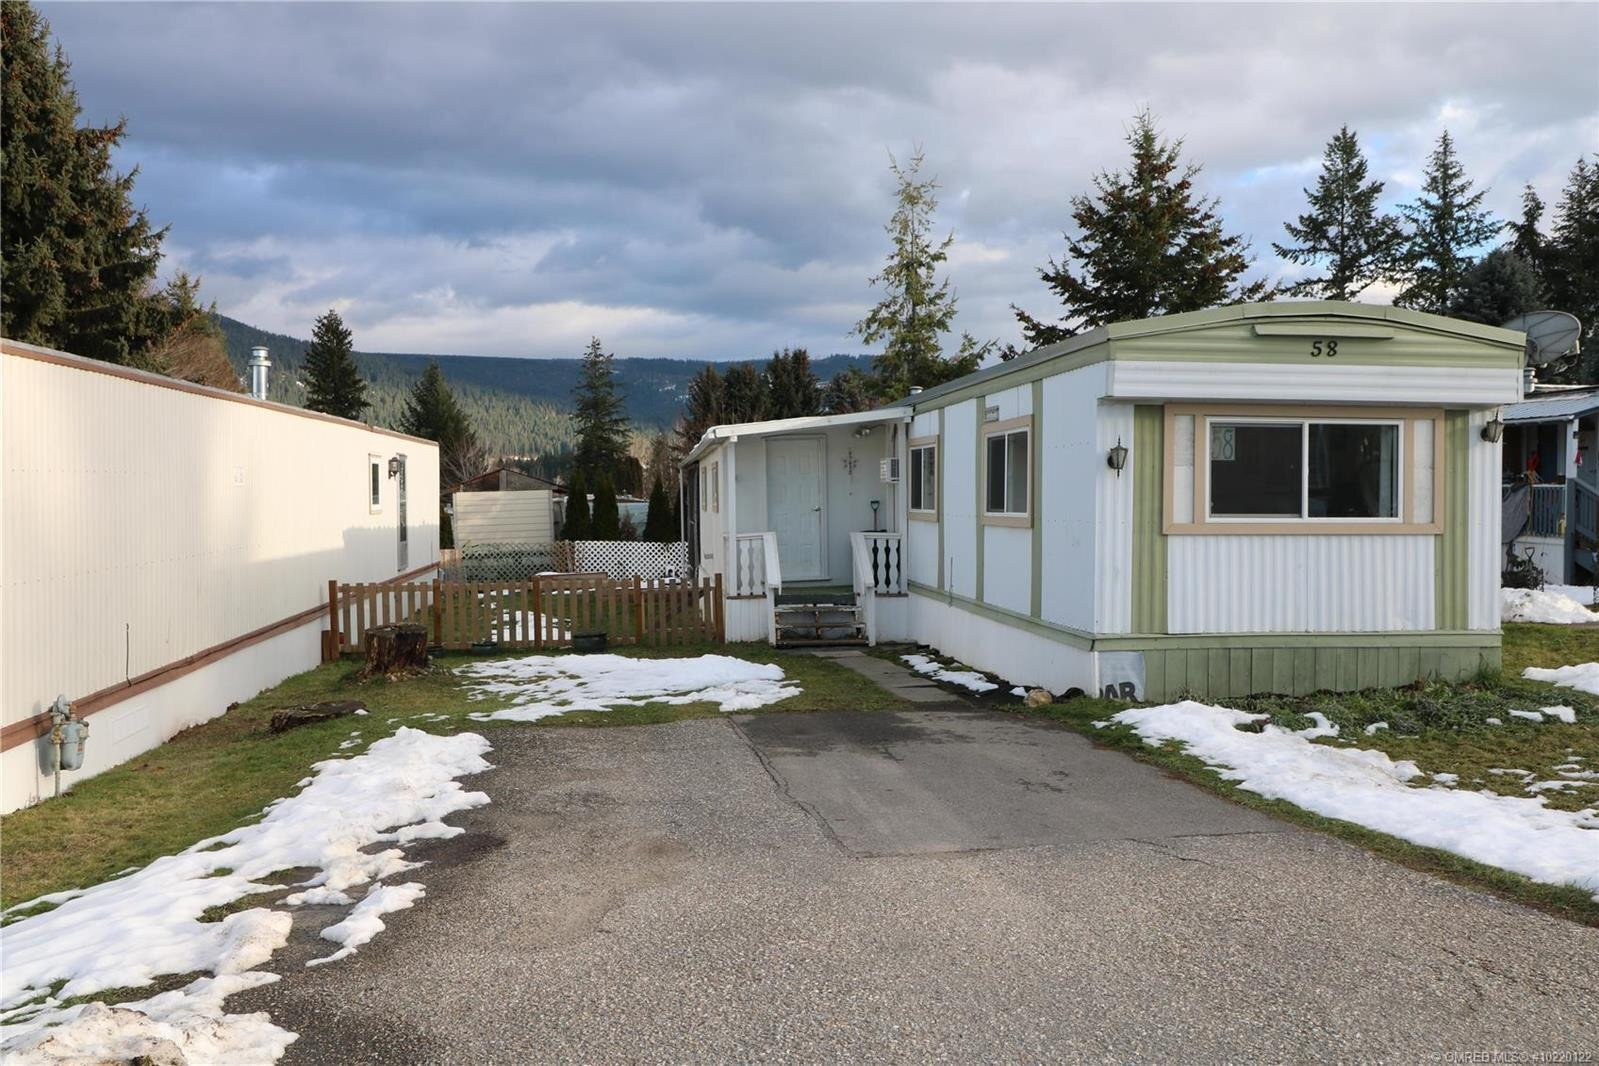 Residential property for sale at 3350 10 Ave Northeast Unit 58 Salmon Arm British Columbia - MLS: 10220122